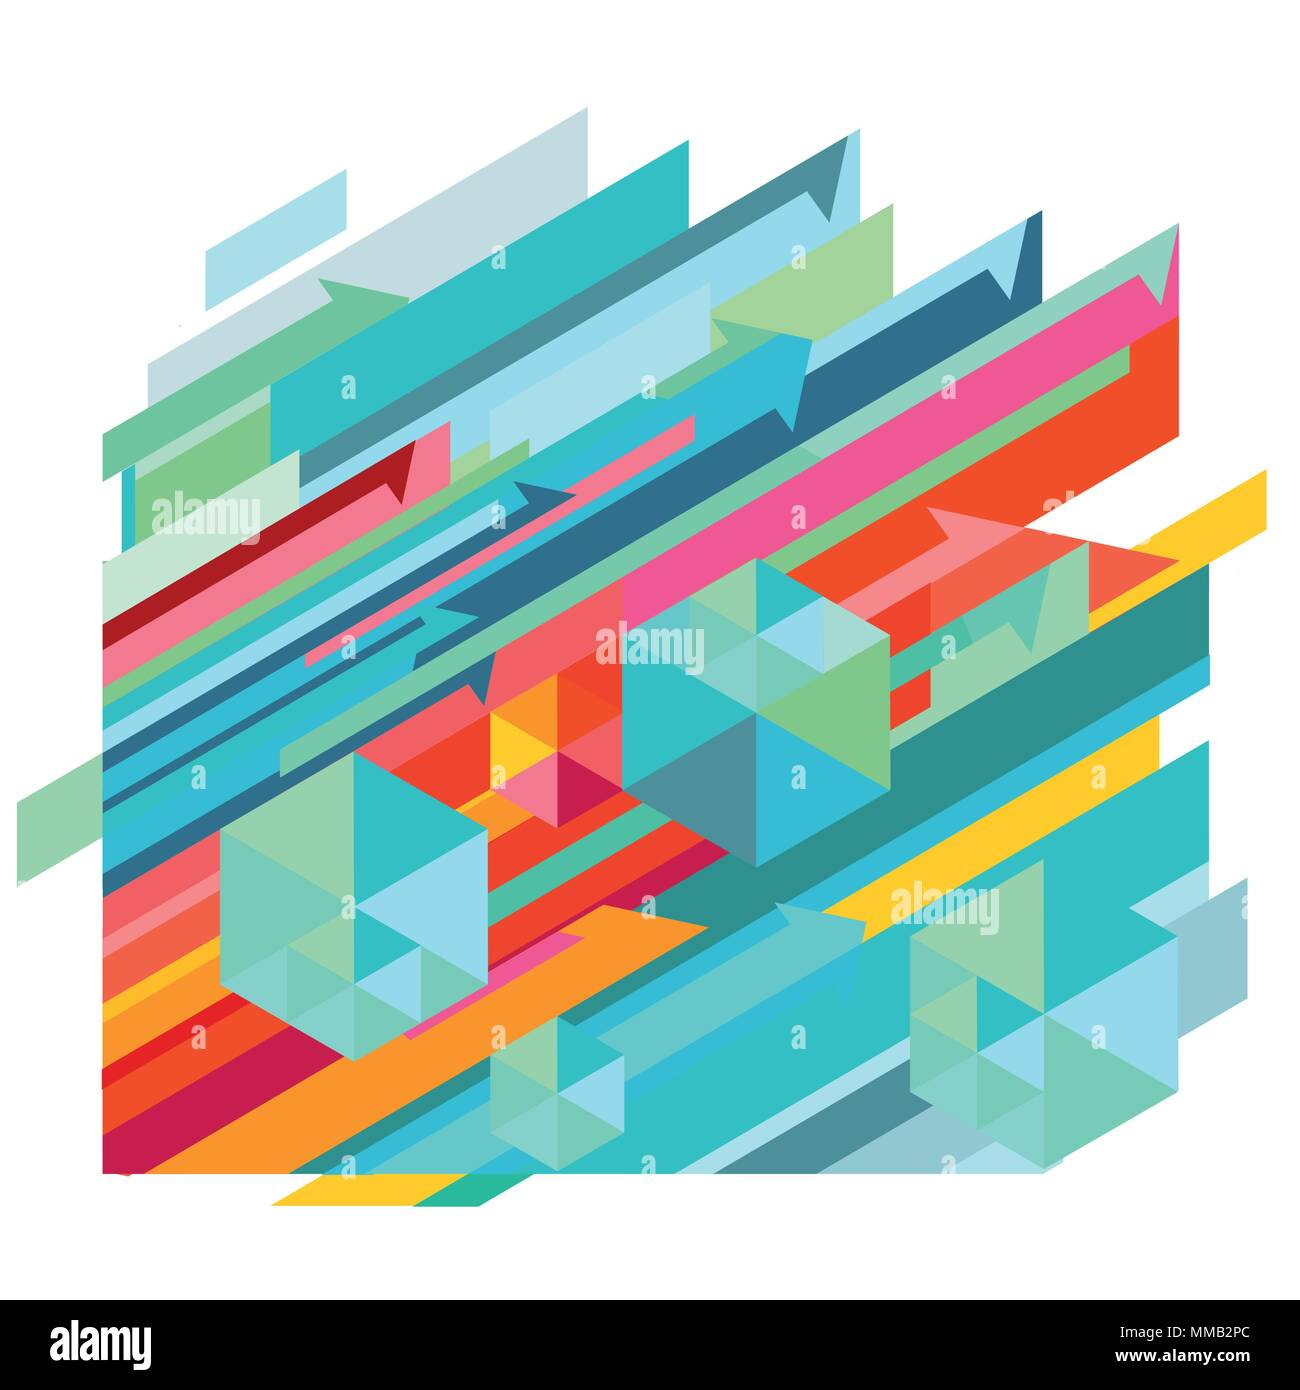 Dynamic pattern, abstract illustration - Stock Image